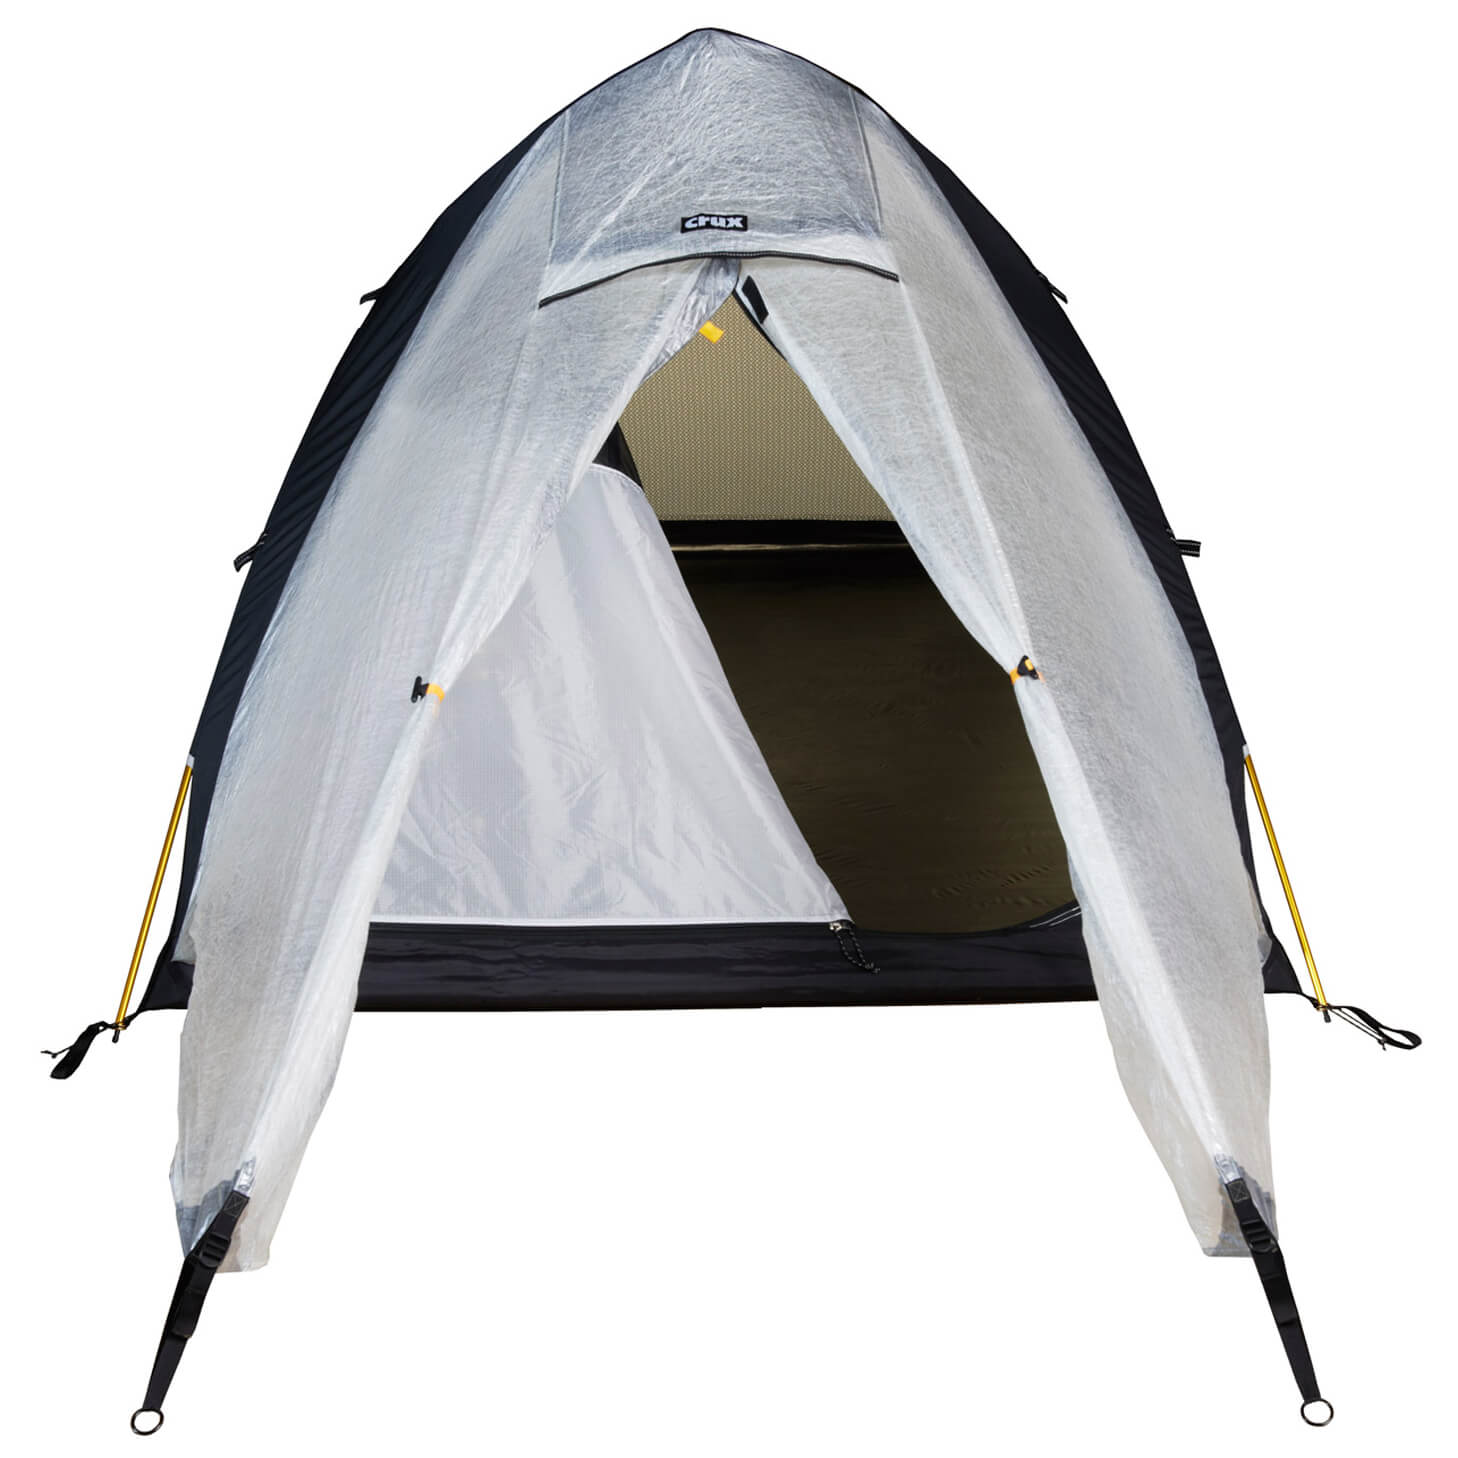 ... Crux - X1 Assault - 2-person tent  sc 1 st  Alpinetrek & Crux X1 Assault - 2-Person Tent | Buy online | Alpinetrek.co.uk